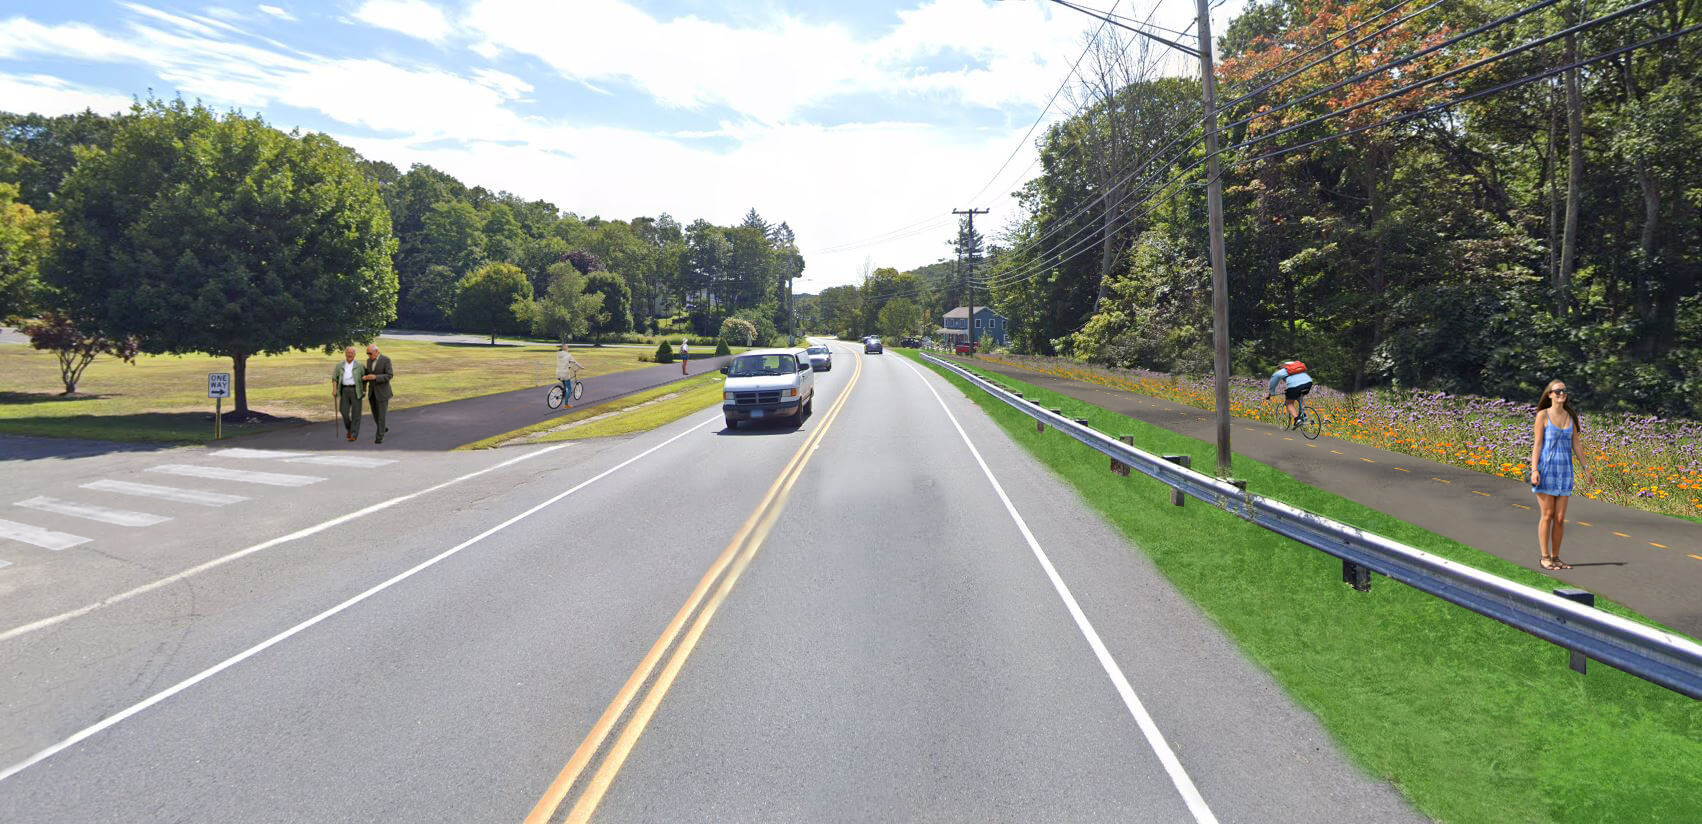 Possible Future Pedestrian and Bicycle infrastructure on route 67